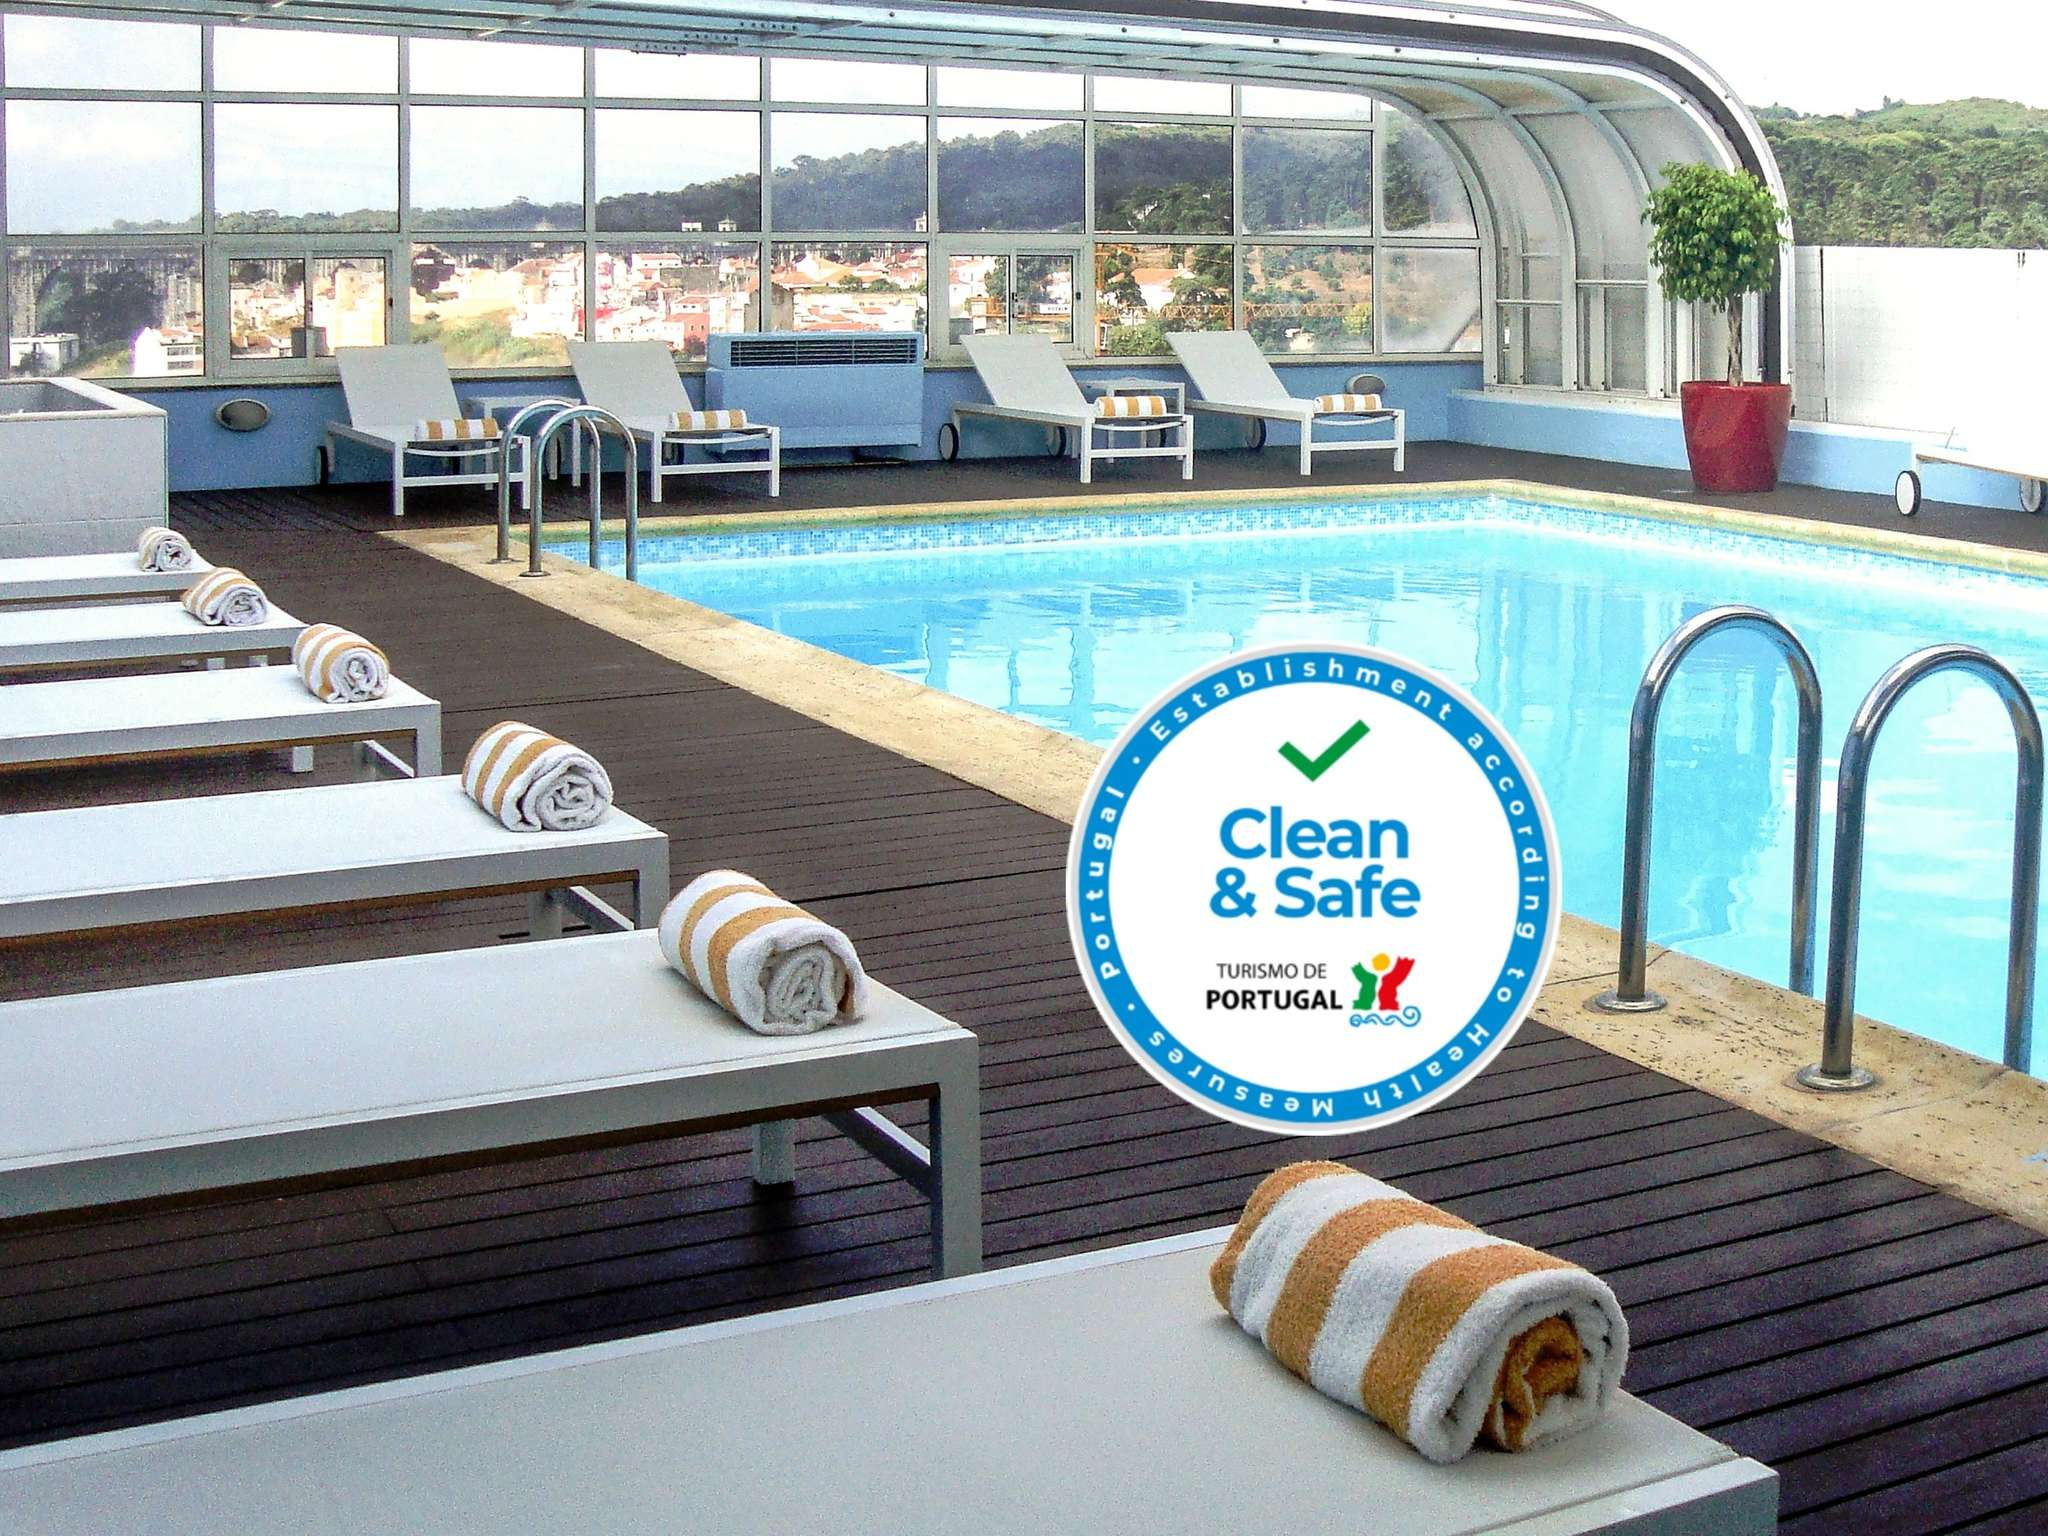 Mercure lisboa hotel comfort and modernity - 4 star hotels in lisbon with swimming pool ...